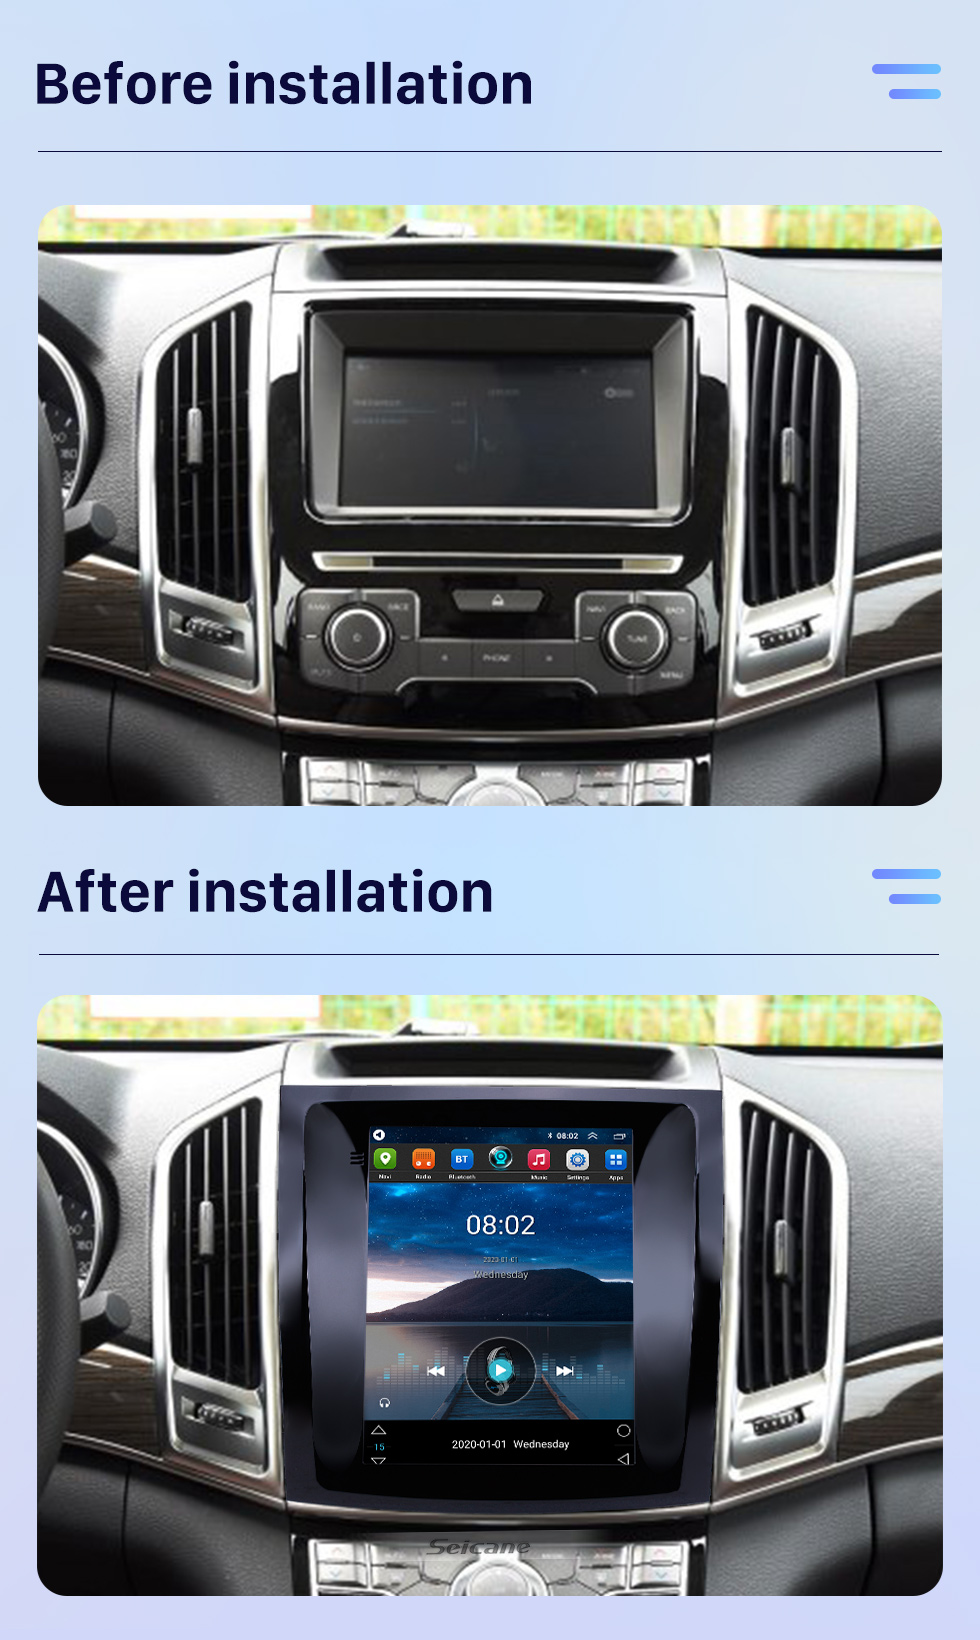 Seicane OEM 9.7 inch Android 10.0 2015-2017 Great Wall Haval H9 GPS Navigation Radio with Touchscreen Bluetooth WIFI support TPMS Carplay DAB+